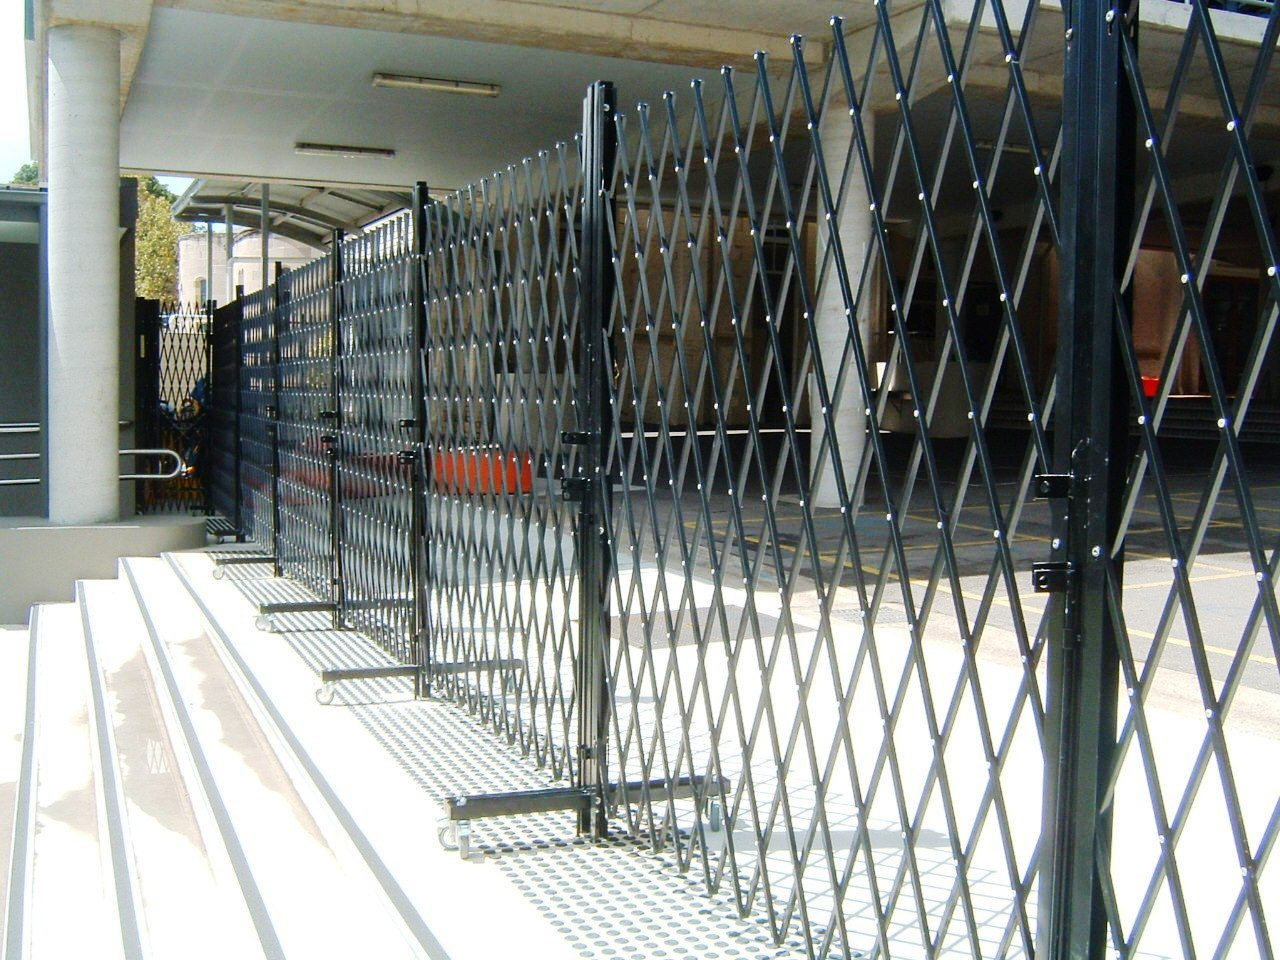 & Portable Barrier Passes Temporary Fencing Tests